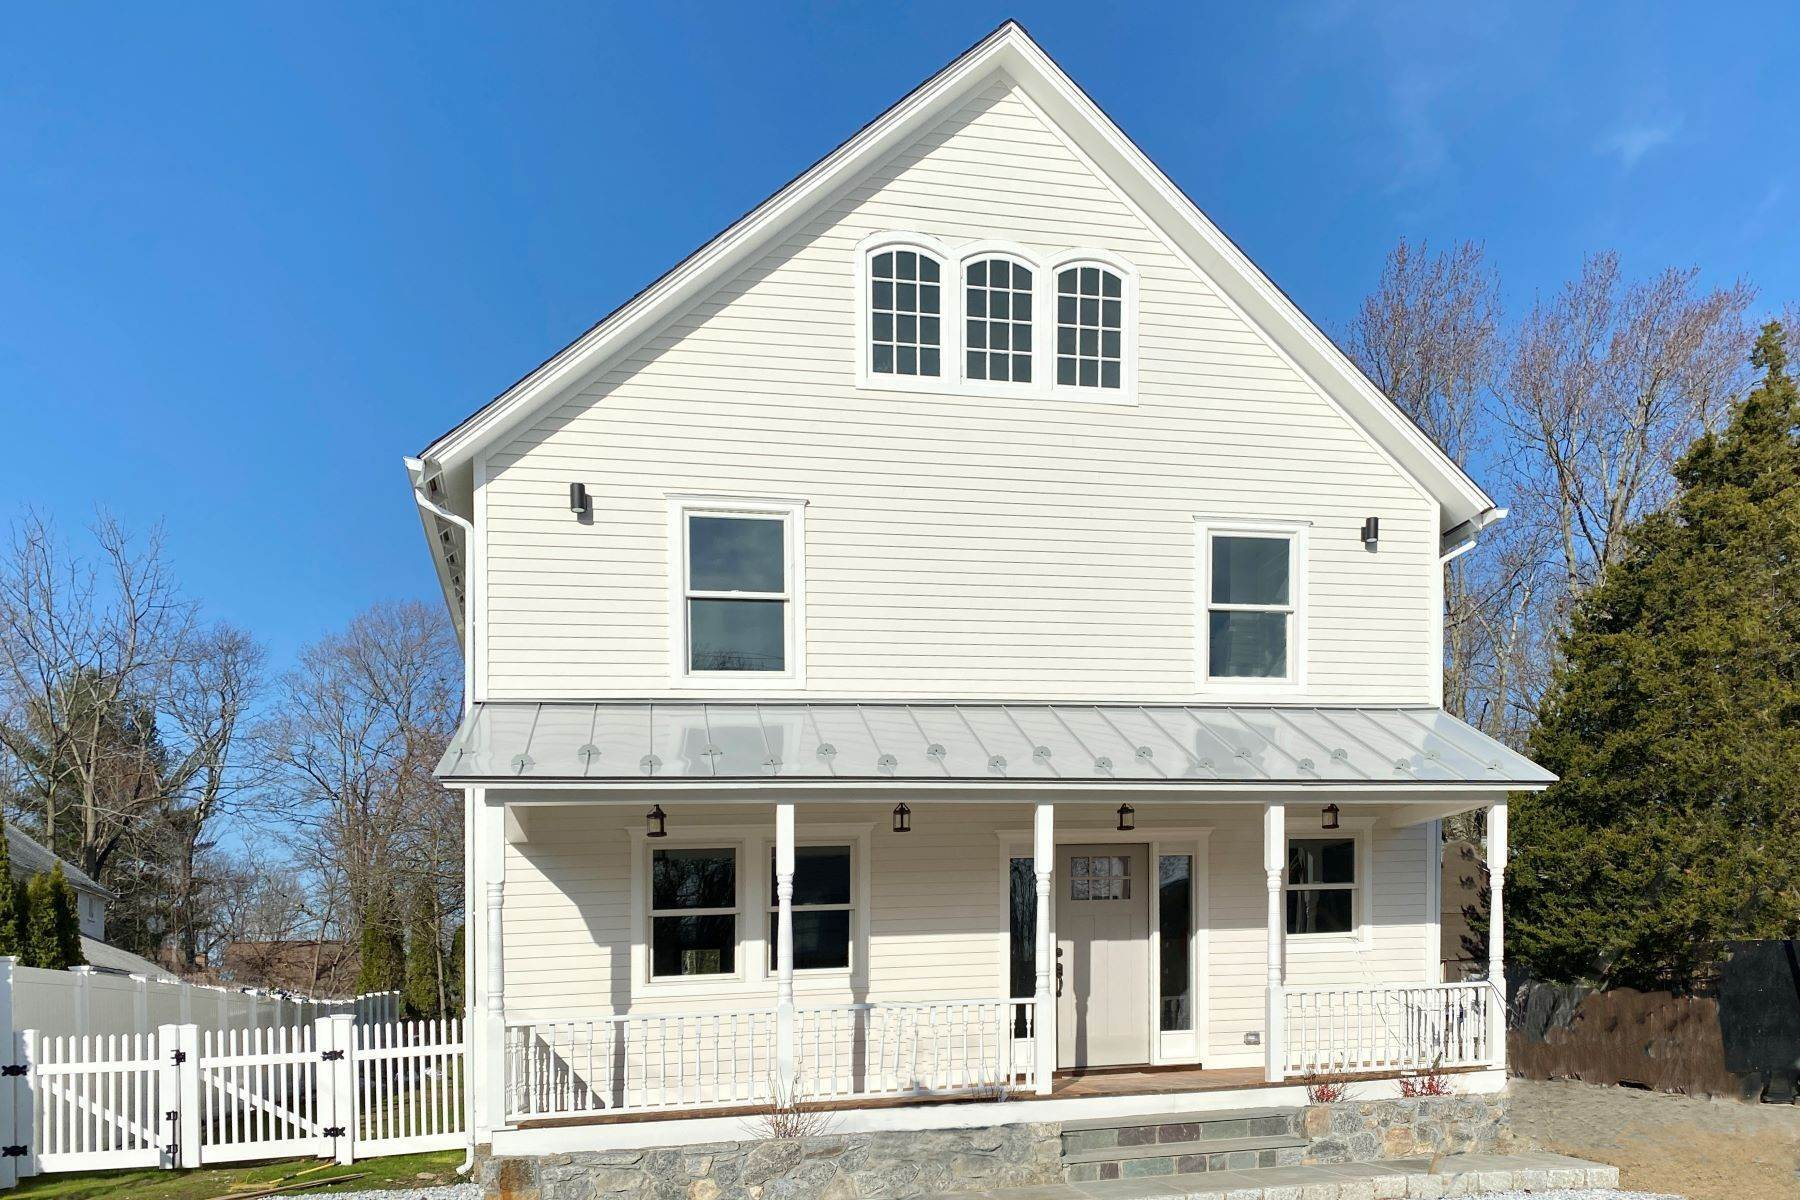 Single Family Homes for Sale at 6 Chestnut Street Darien, Connecticut 06820 United States